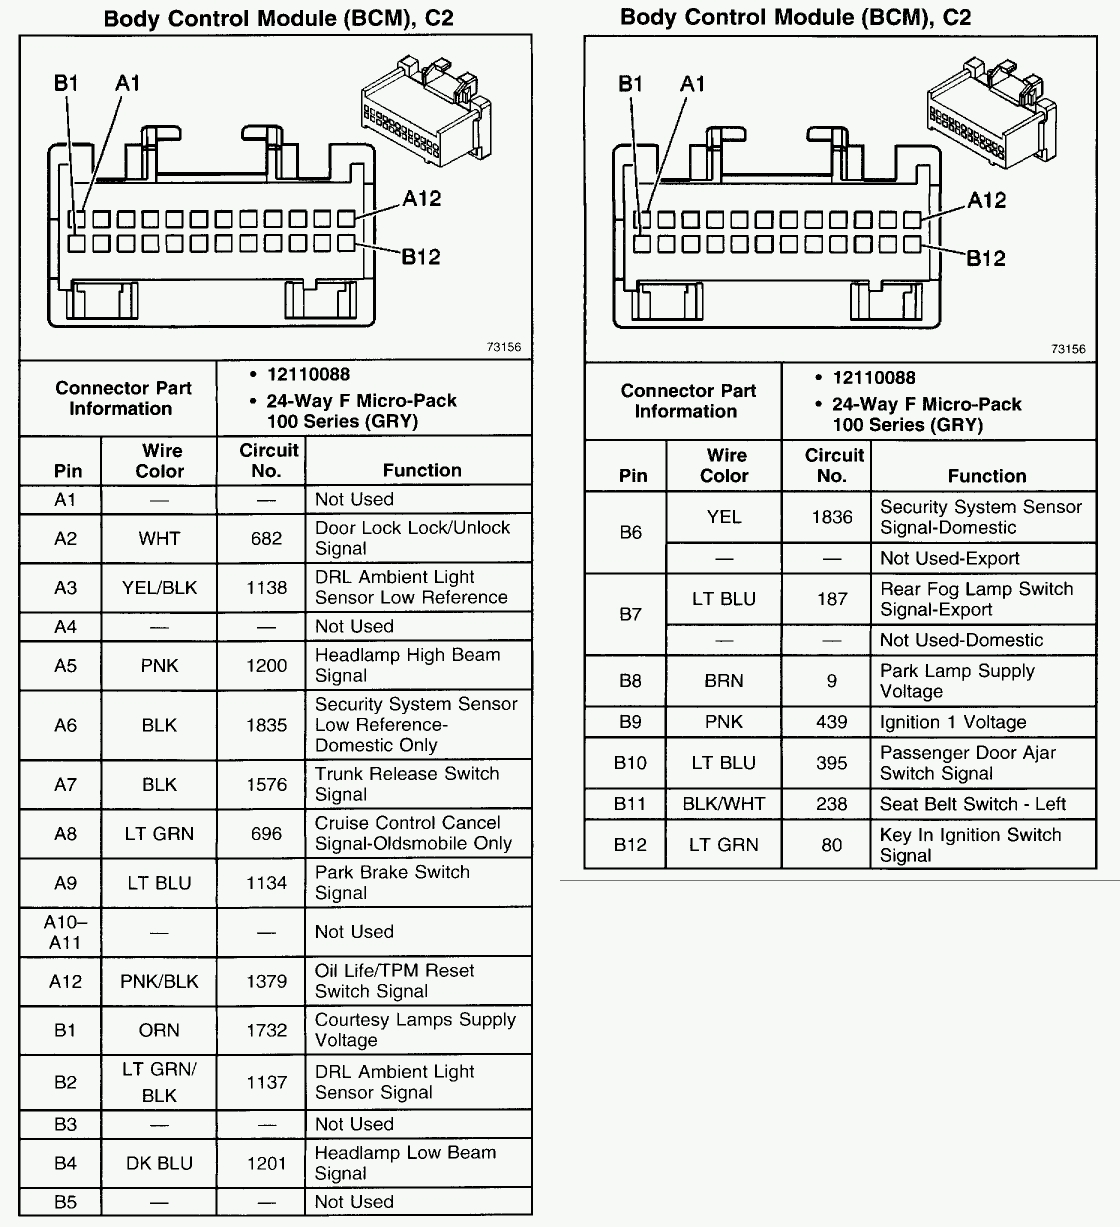 pontiac grand prix radio wiring diagram 2013 07 17 171026 2000 dic intended for 2004 pontiac grand prix parts diagram pontiac grand prix radio wiring diagram 2013 07 17 171026 2000 dic 2000 pontiac grand prix radio wiring diagram at bayanpartner.co